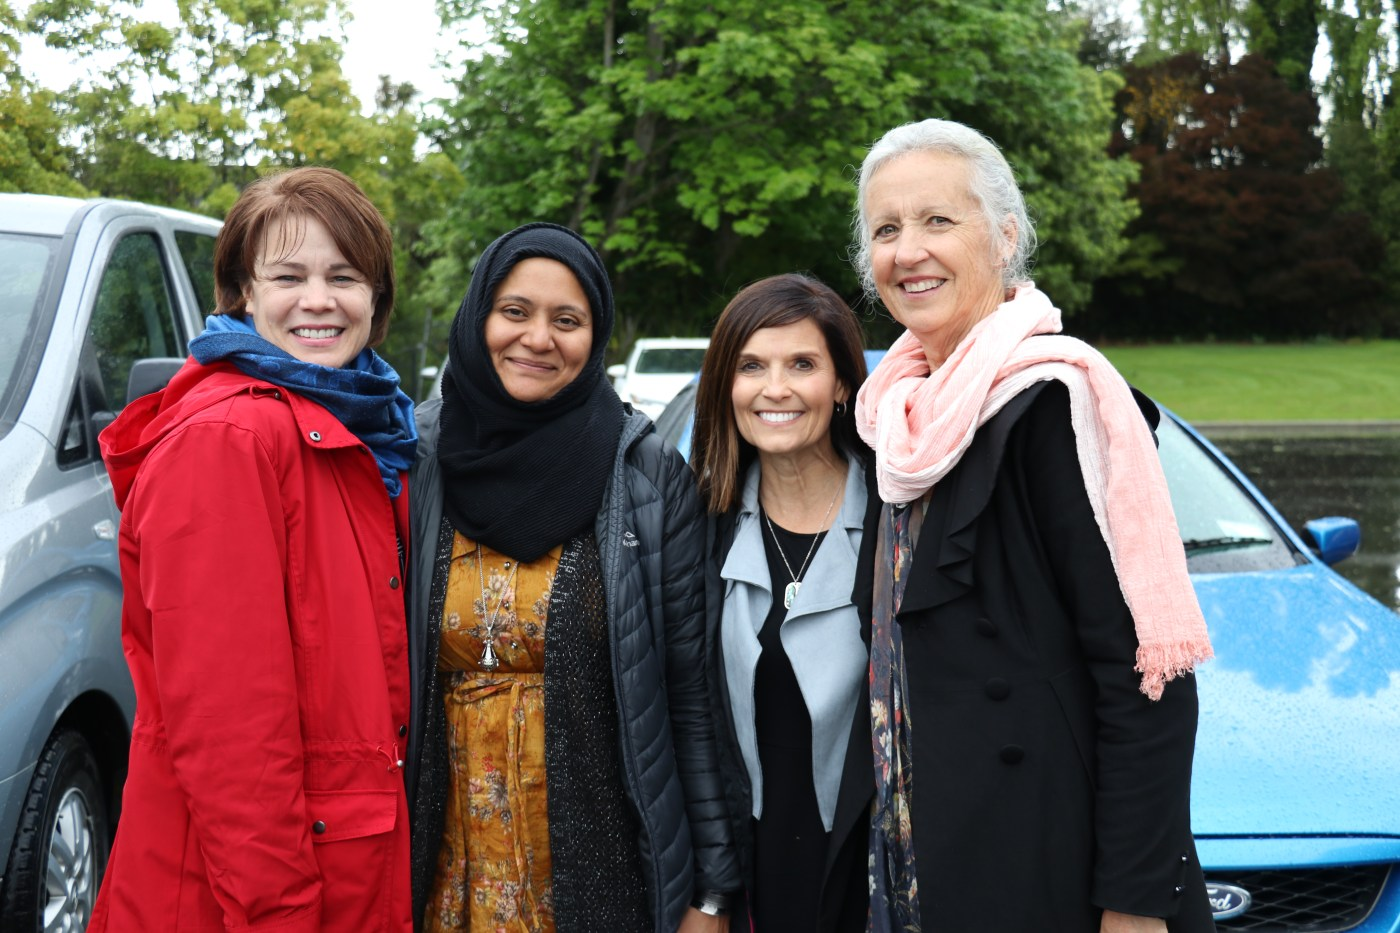 From left, Sister Sharon Eubank, Dr. Hafsa Ahmed, Sister Becky Craven and Sister Noeline Odgers pose for a photo together after touring through the Al Noor Mosque in Christchurch, New Zealand, in October 2019.